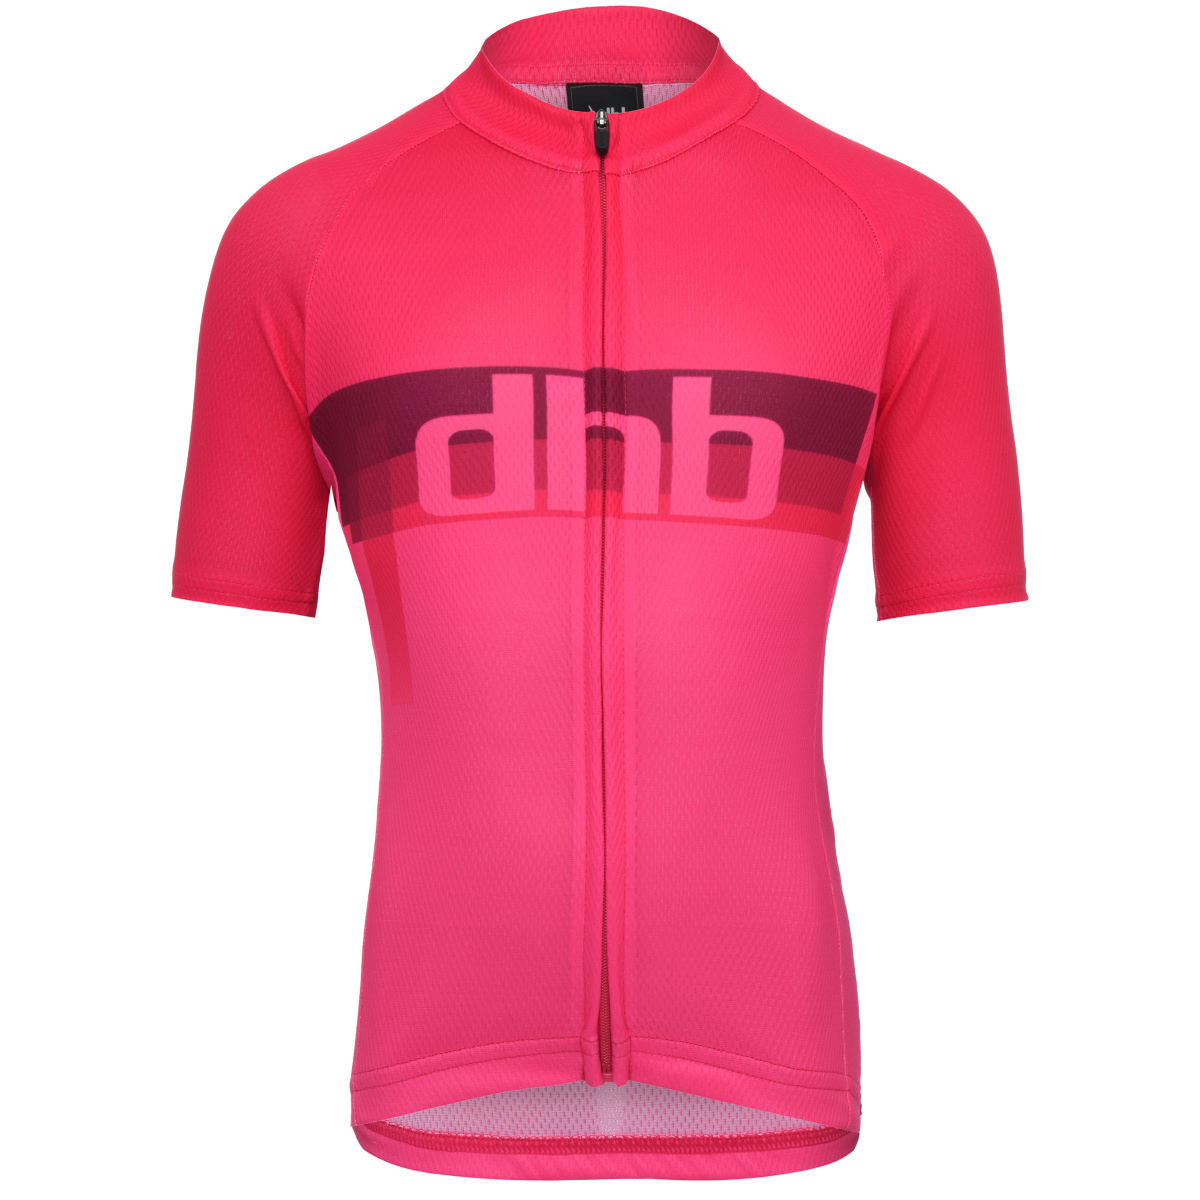 Maillot Enfant dhb Blur (manches courtes) - 12-14 Years Pink/Pink